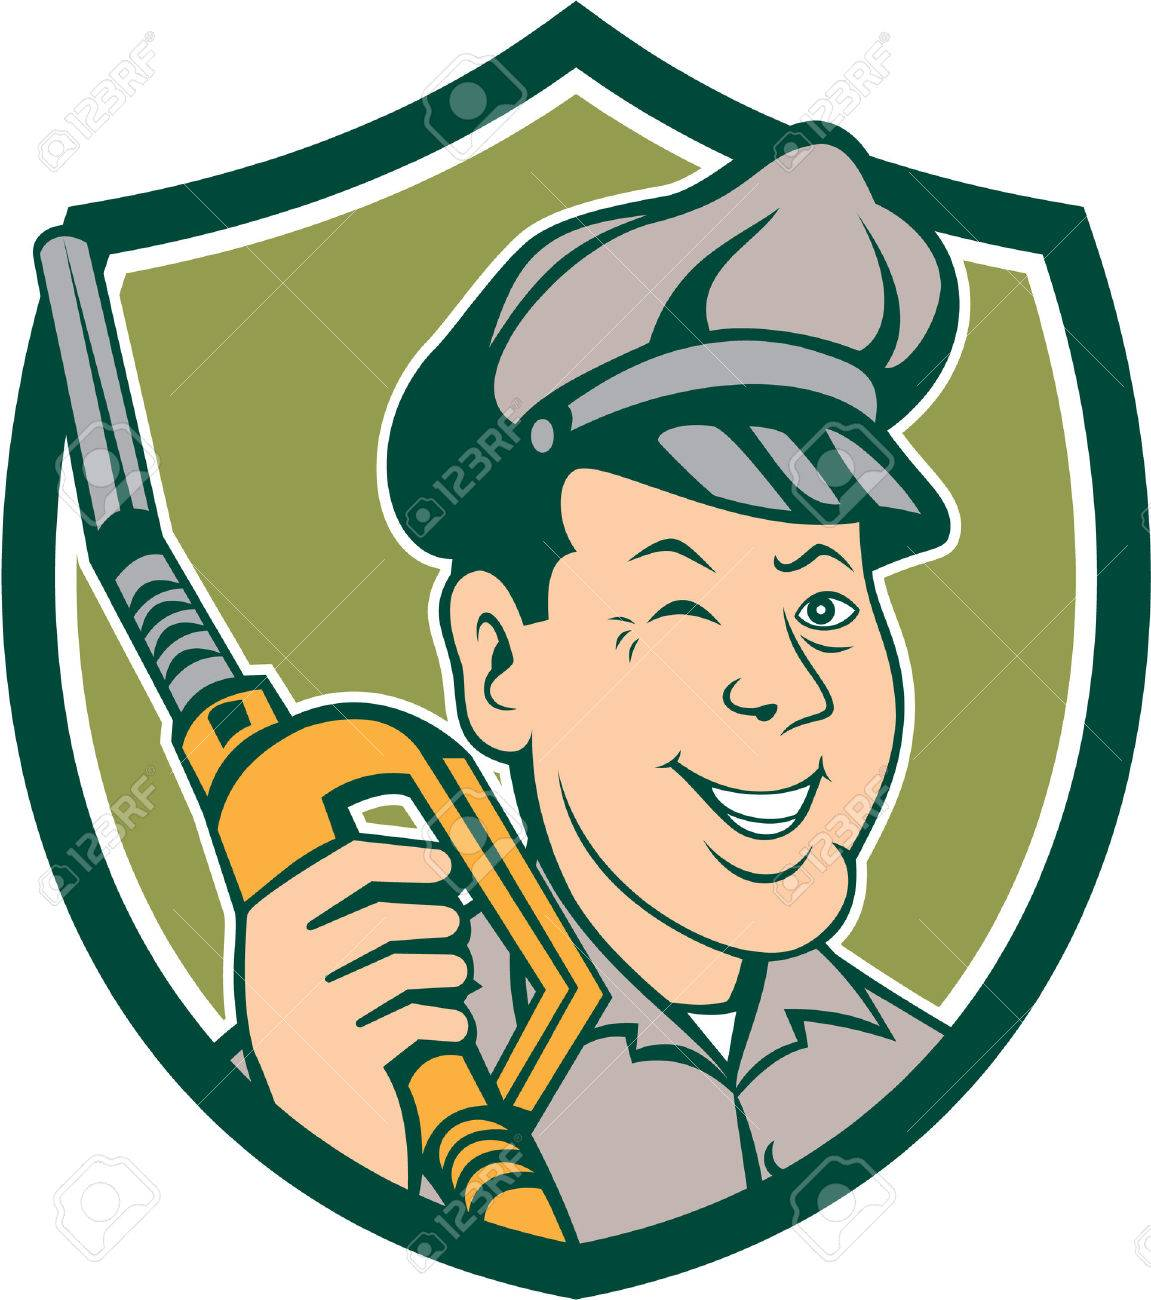 Illustration of gas gasoline fuel attendant worker winking smiling holding fuel pump nozzle - 35641223-Illustration-of-gas-gasoline-fuel-attendant-worker-winking-smiling-holding-fuel-pump-nozzle--Stock-Vector